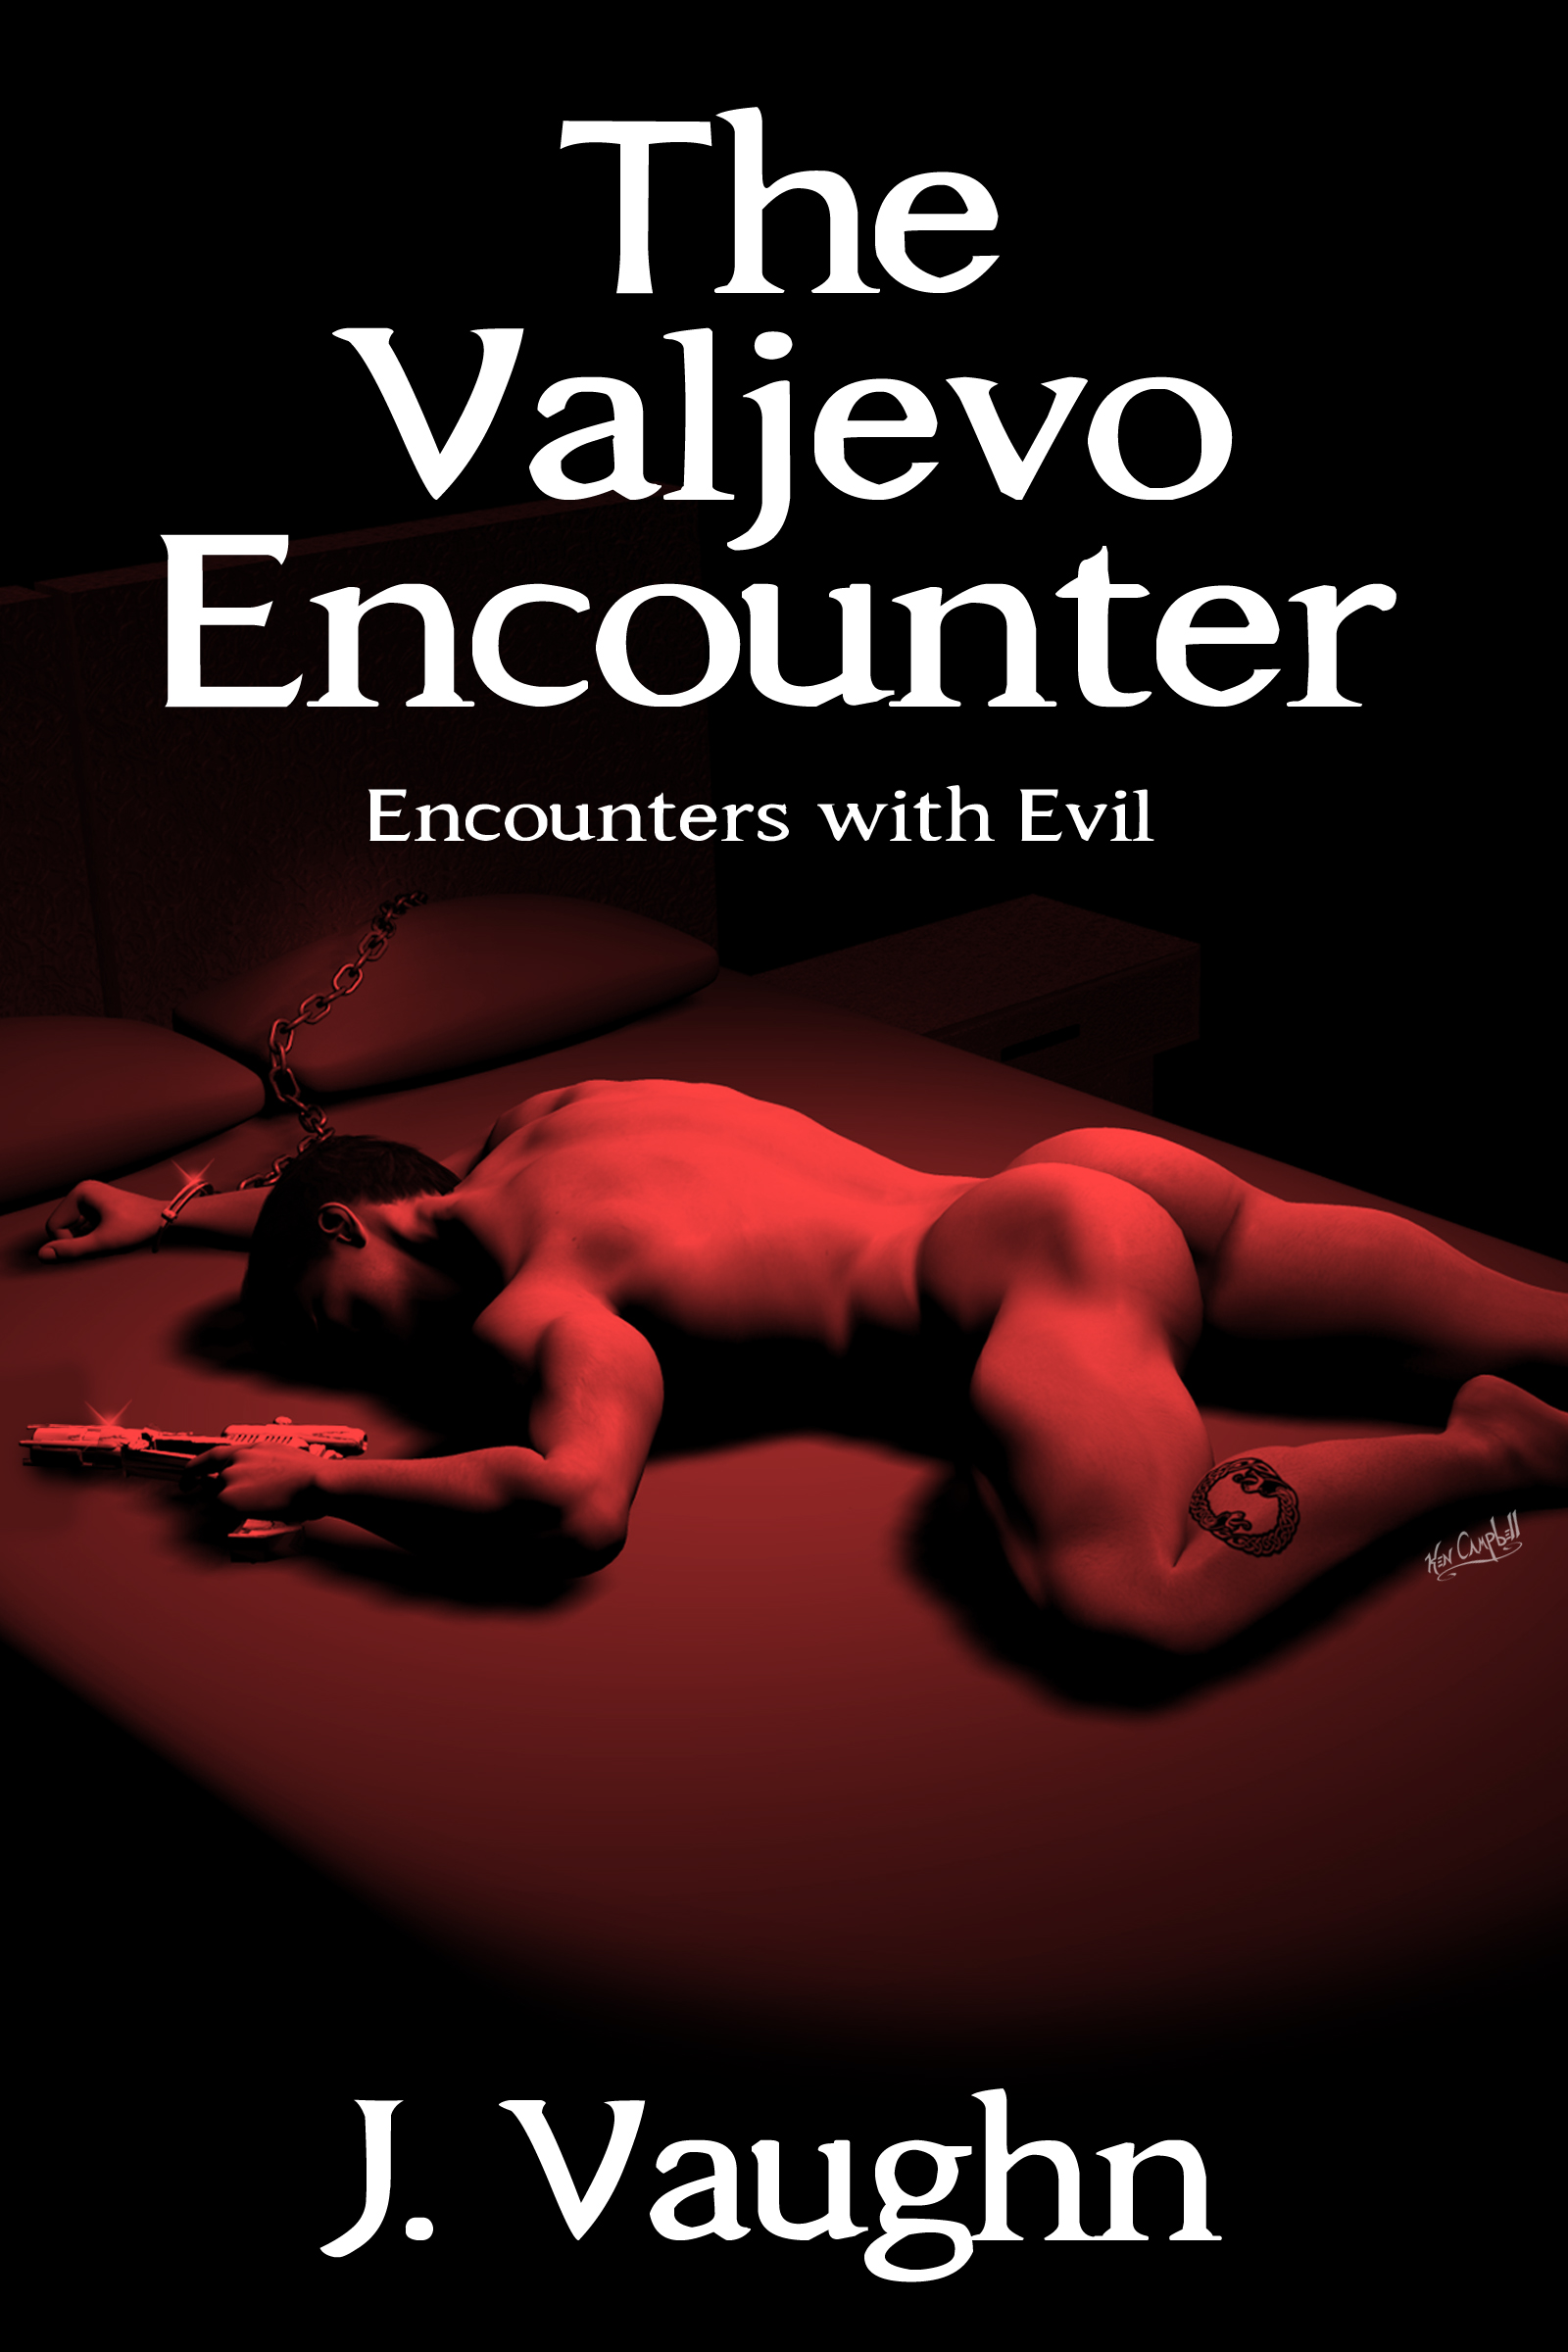 The Valjevo Encounter